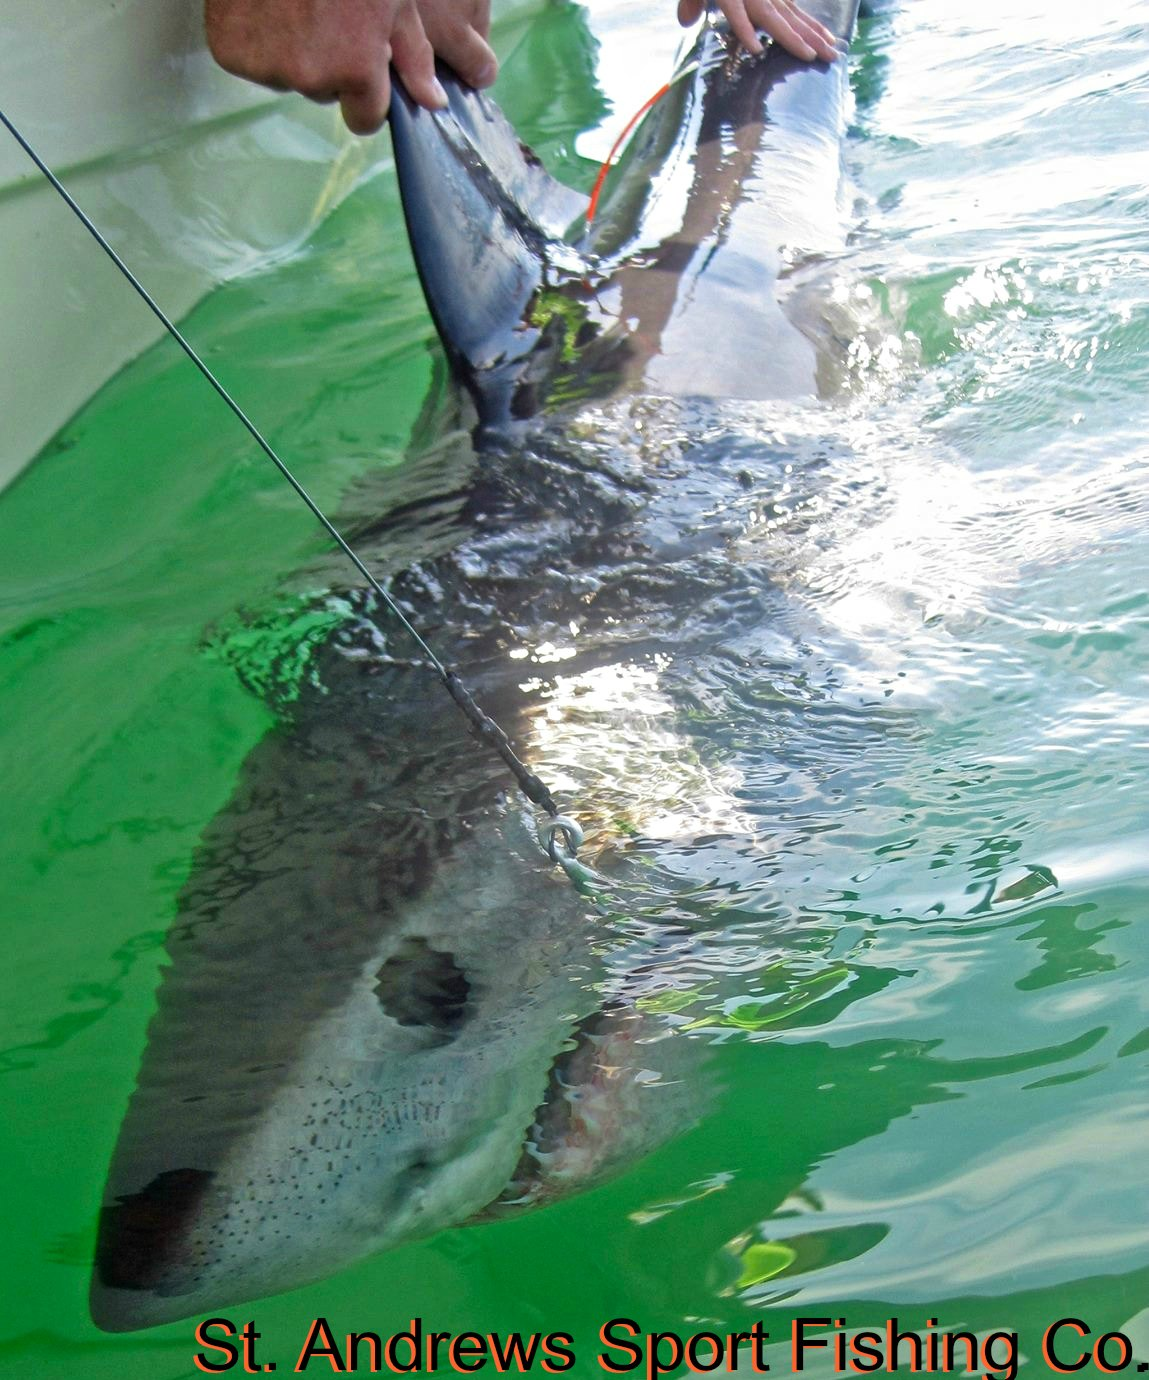 Catch, Tag and release shark in the Bay of Fundy with St. Andrews Sport Fishing